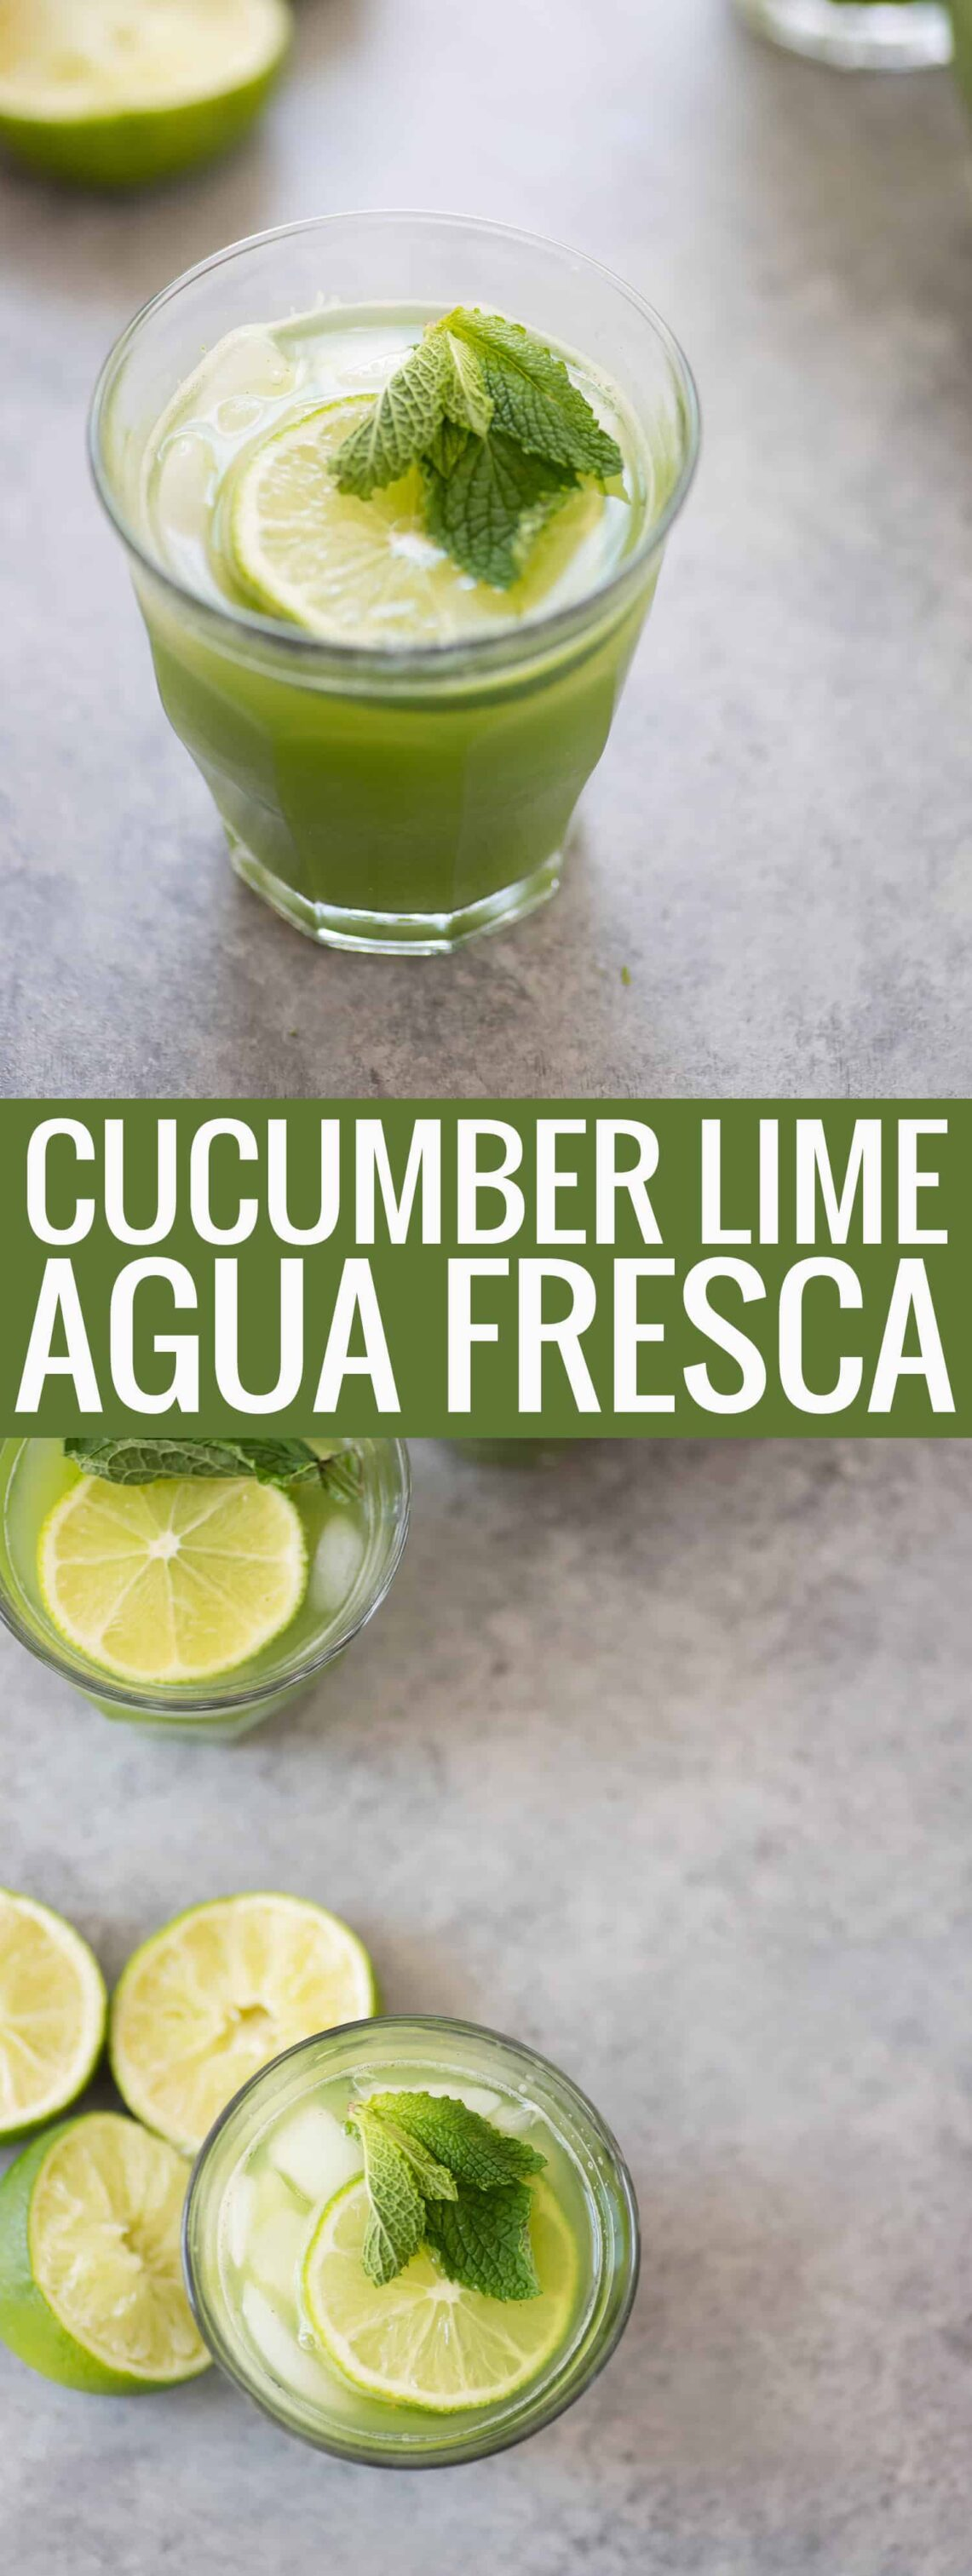 Cucumber Mint Lime Agua Fresca - Delish Knowledge